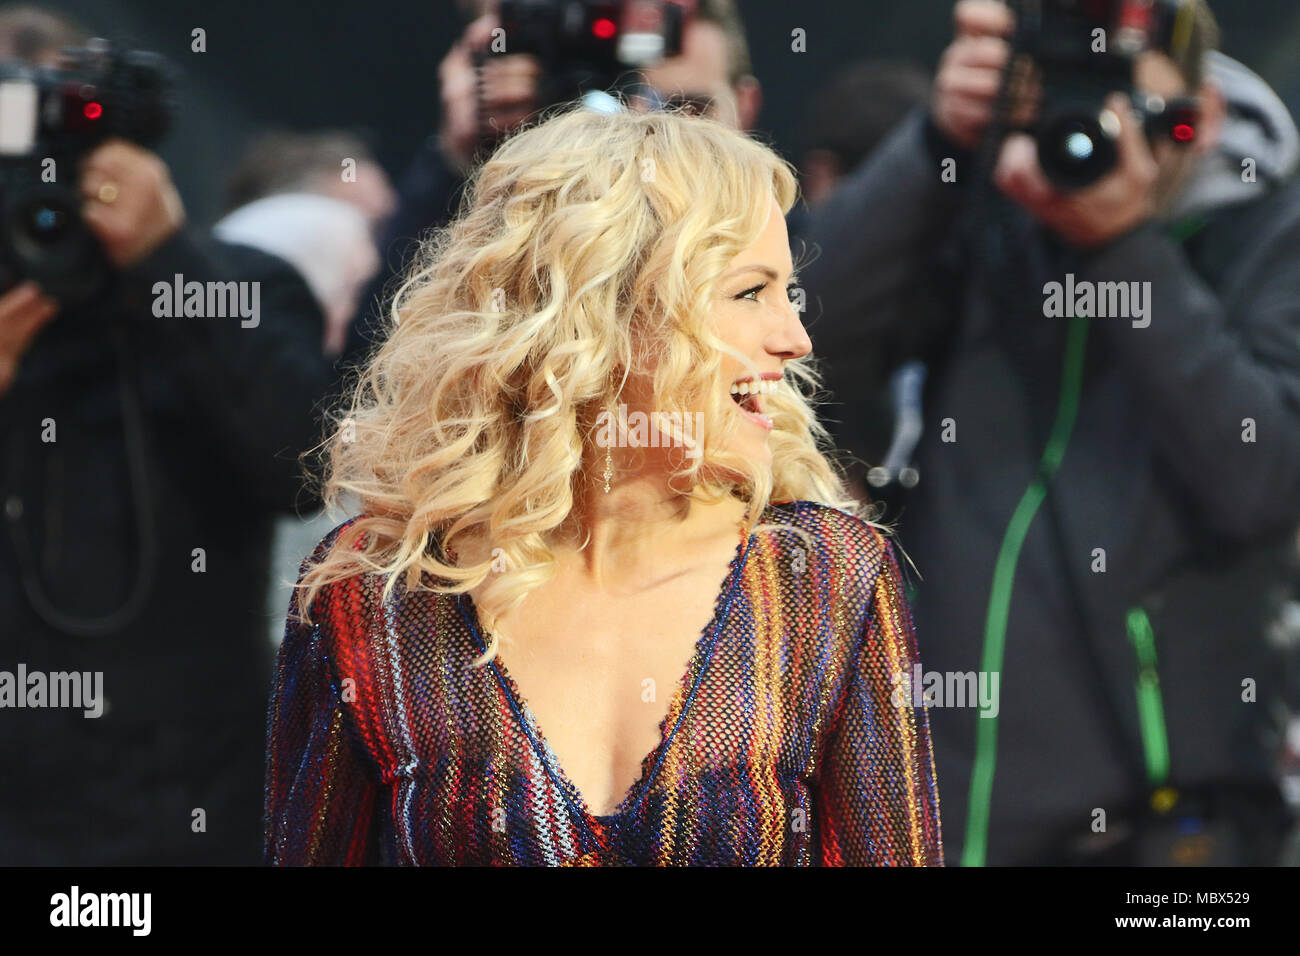 London, Großbritannien. 11. April 2018. Malin Akerman, Rampage - Europäische Premiere, Leicester Square, London, UK, 11. April 2018, Foto von Richard Goldschmidt Credit: Rich Gold/Alamy leben Nachrichten Stockbild